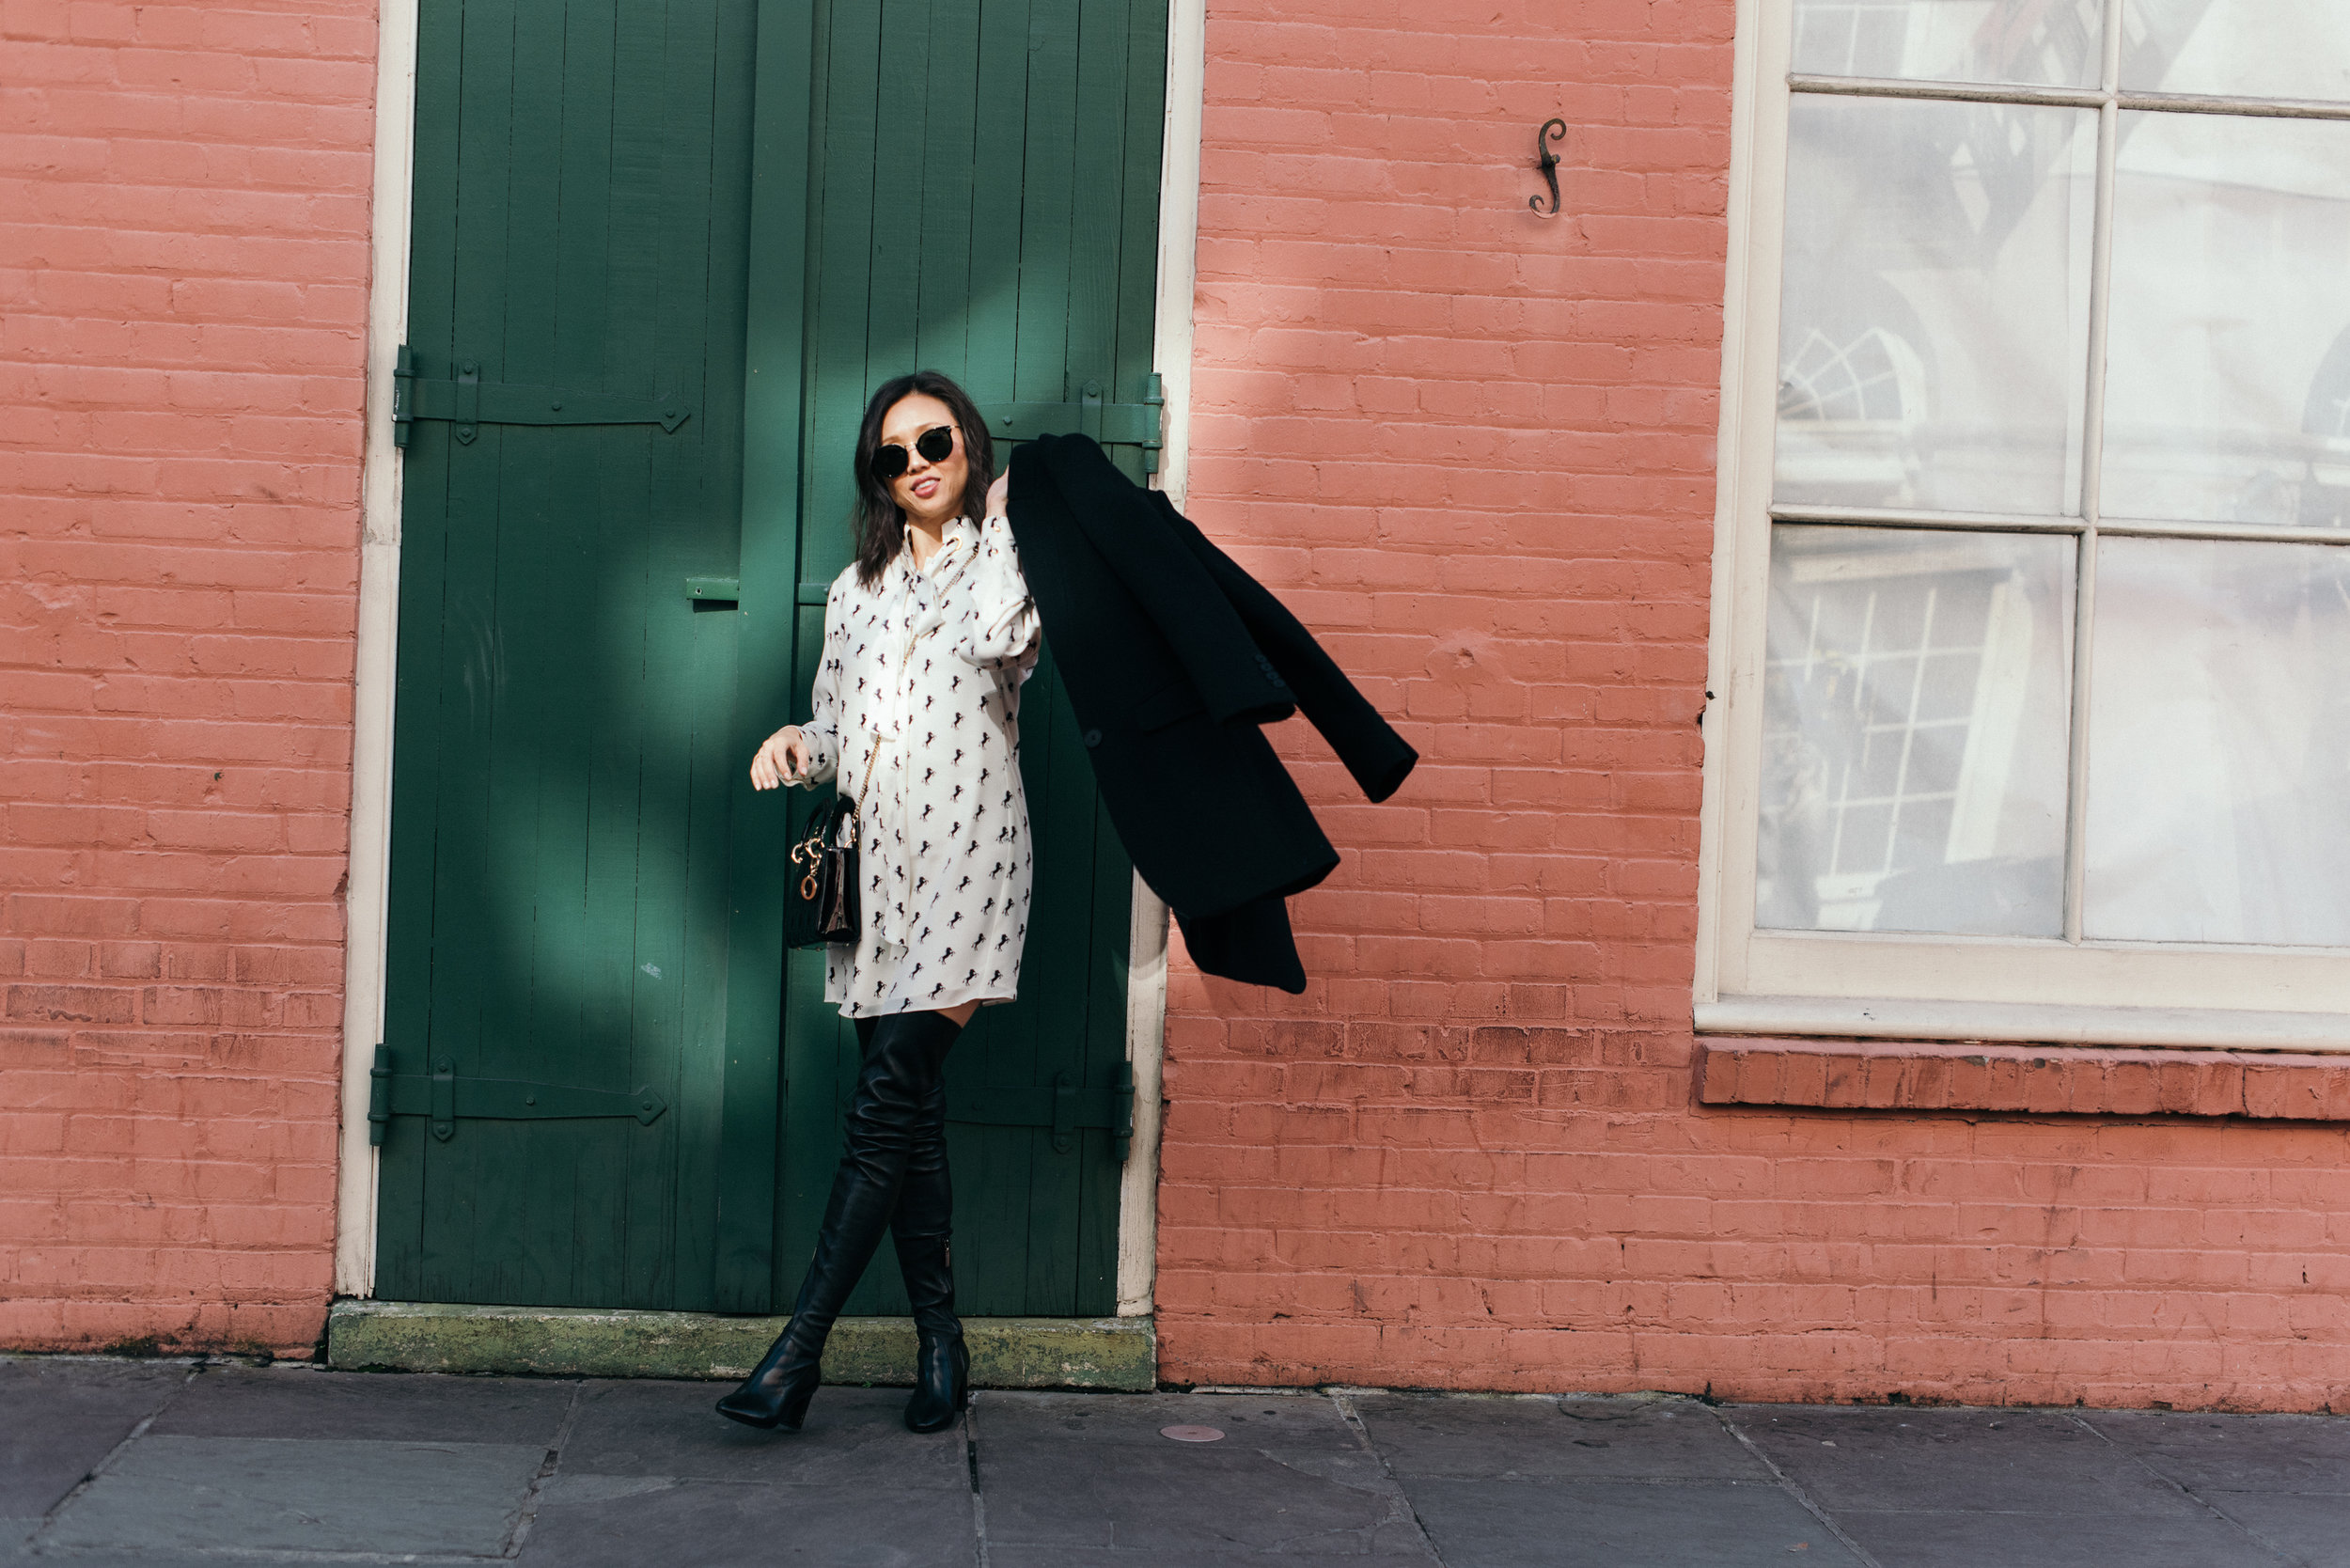 Coat: Stella mccartney, bag: dior, dress: chloe, boots: ysl (hair + make-up: @binacalinettehmu, Photographer: @augustasagnelli